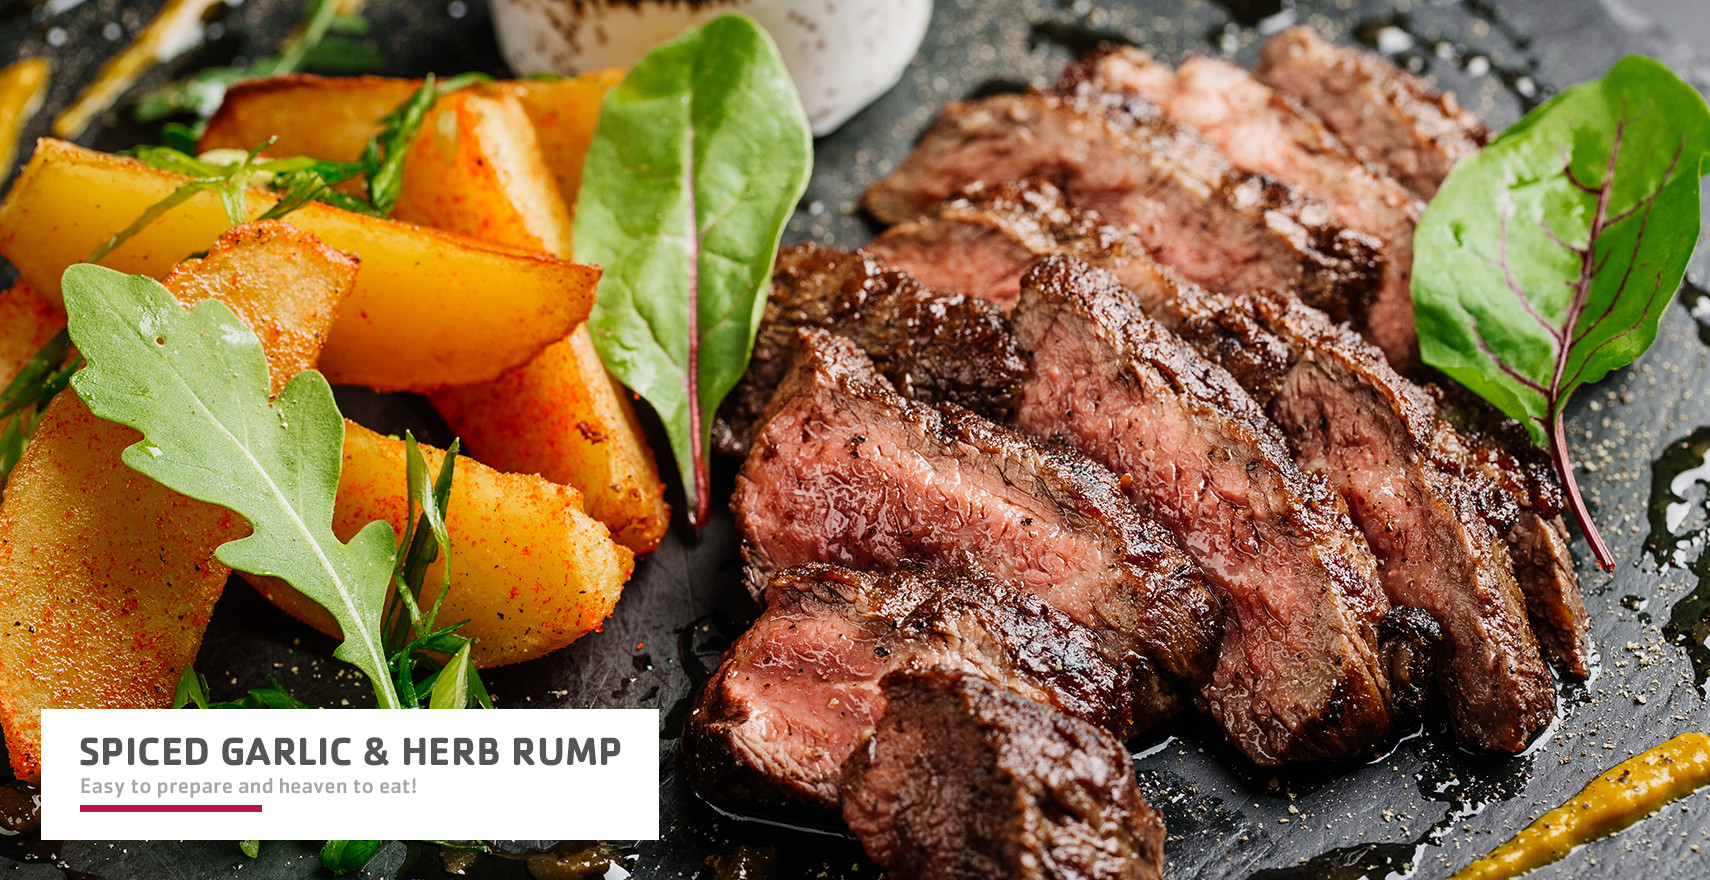 Braai-Spiced Garlic & Herb Rump.jpg